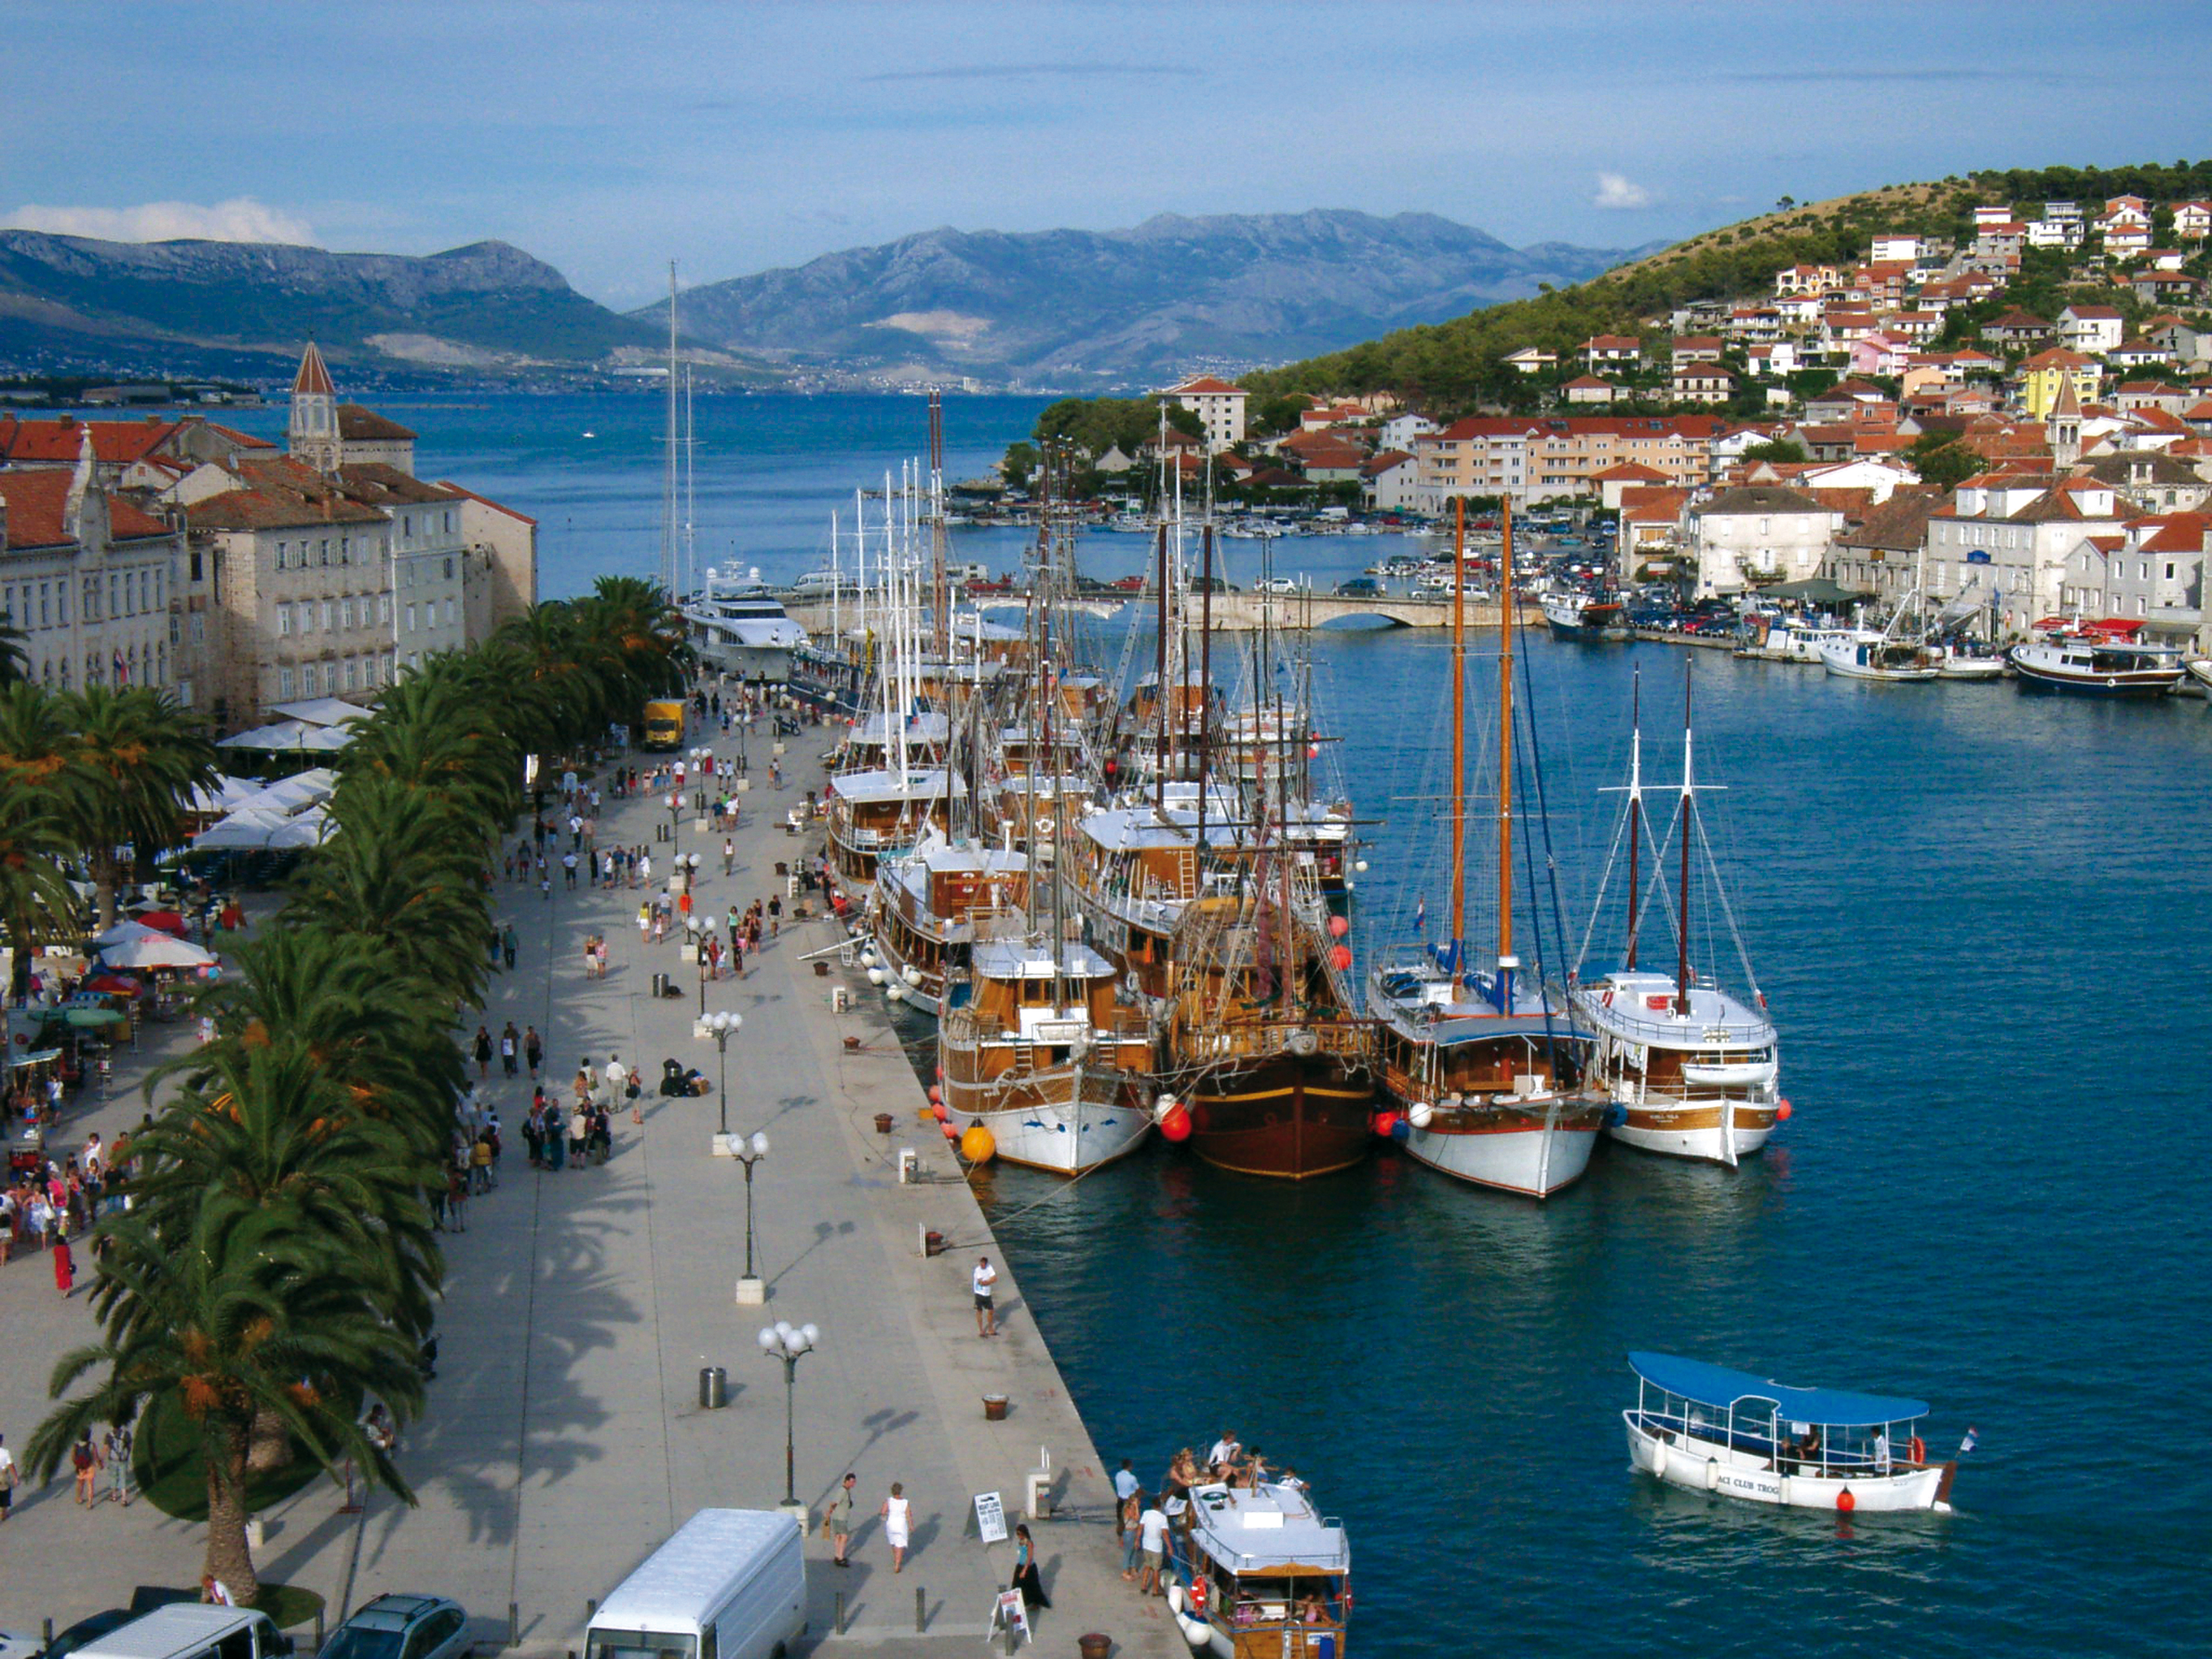 Trogir Croatia  city pictures gallery : View from Kamerengo Fortress in Trogir, Croatia, where the boats are ...